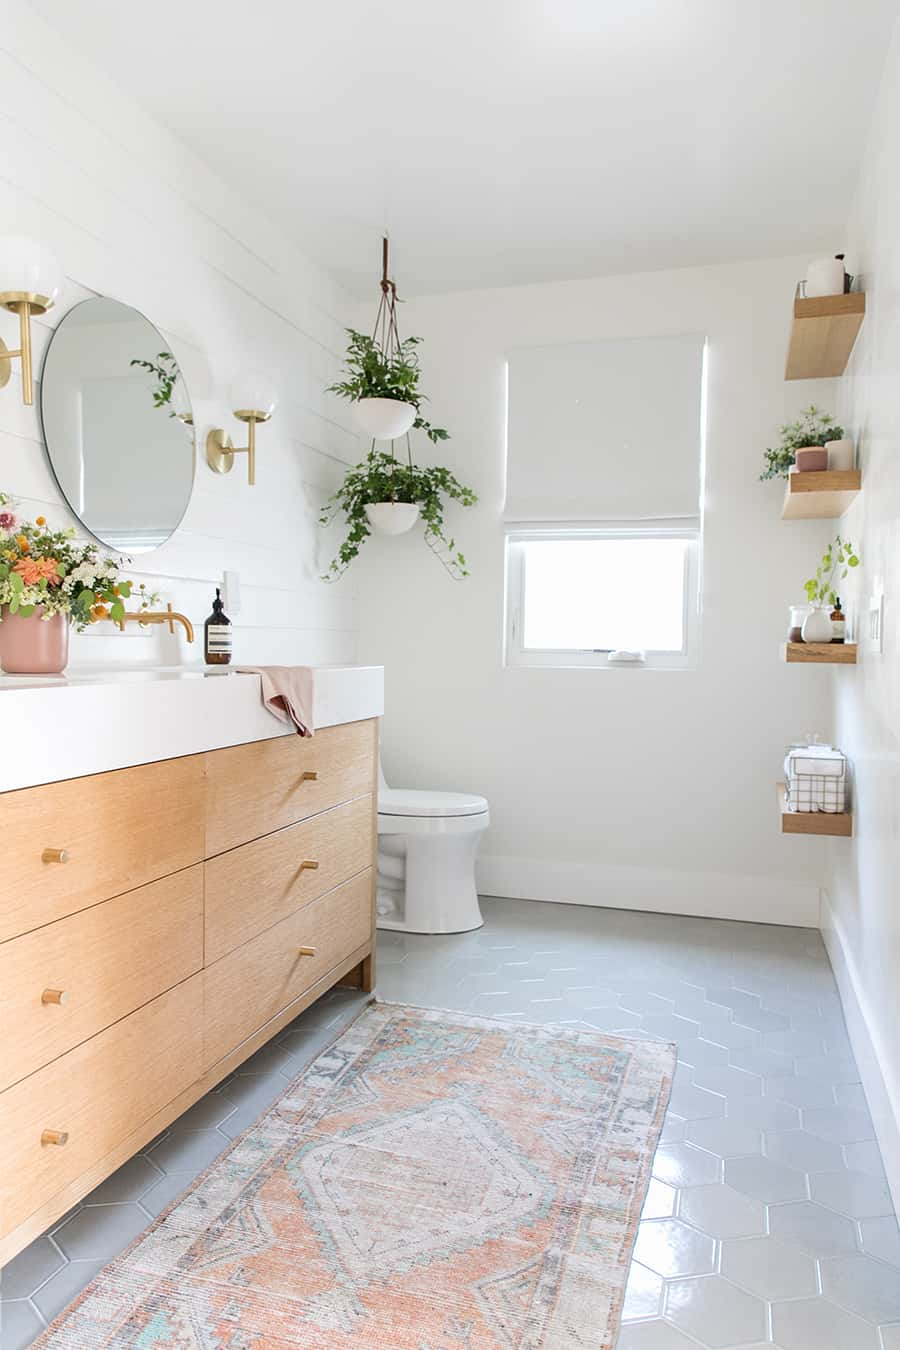 Bathroom with fireclay tile, custom vanity, hanging plants, flowers and built in shelving.